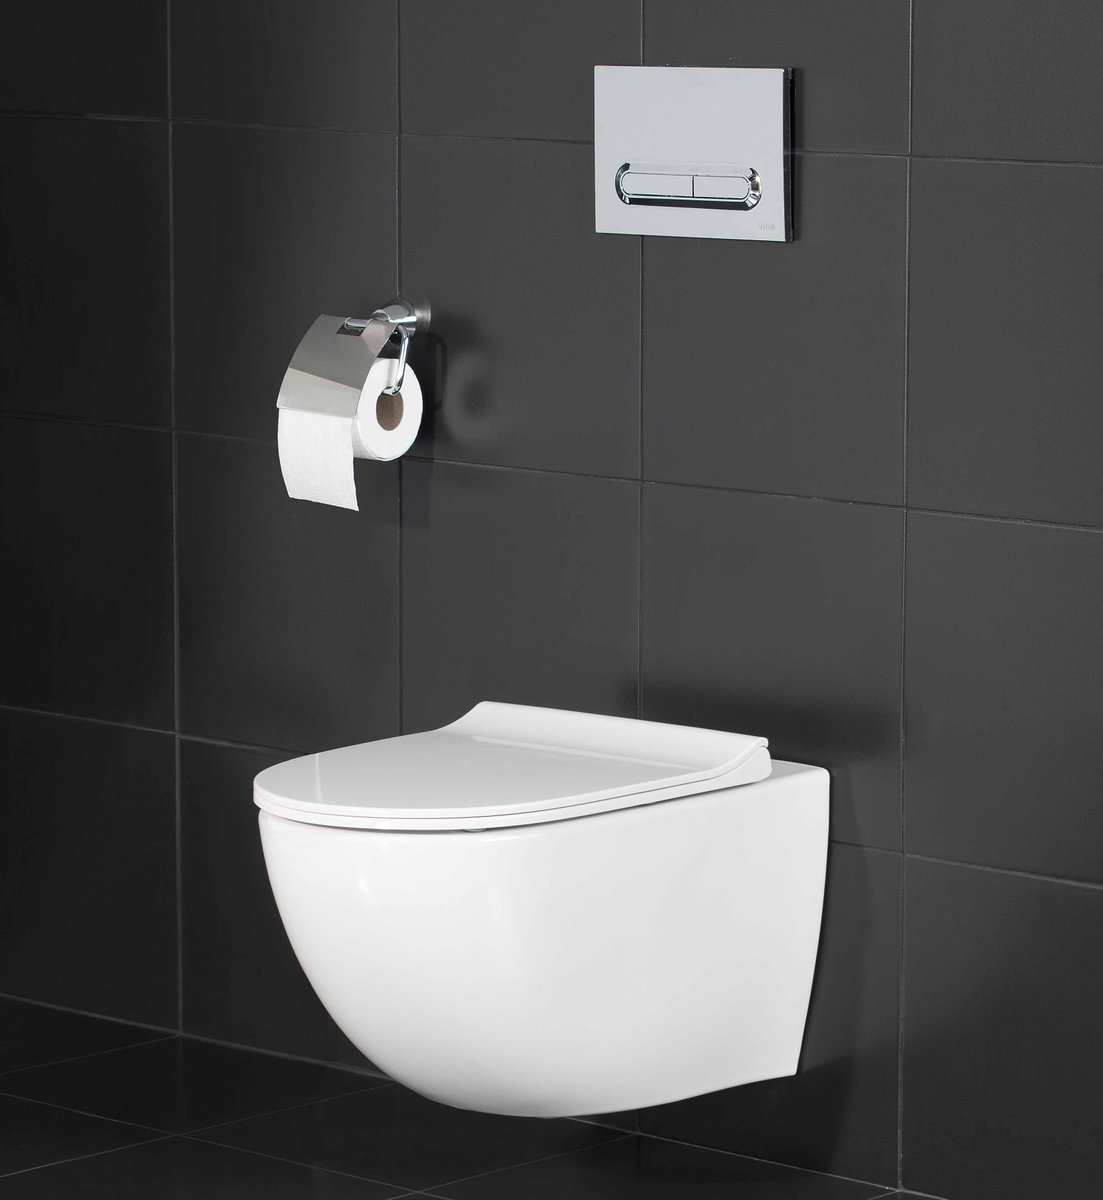 Vitra Bathrooms On Twitter Our Popular Sento Wall Hung Wc Is Now